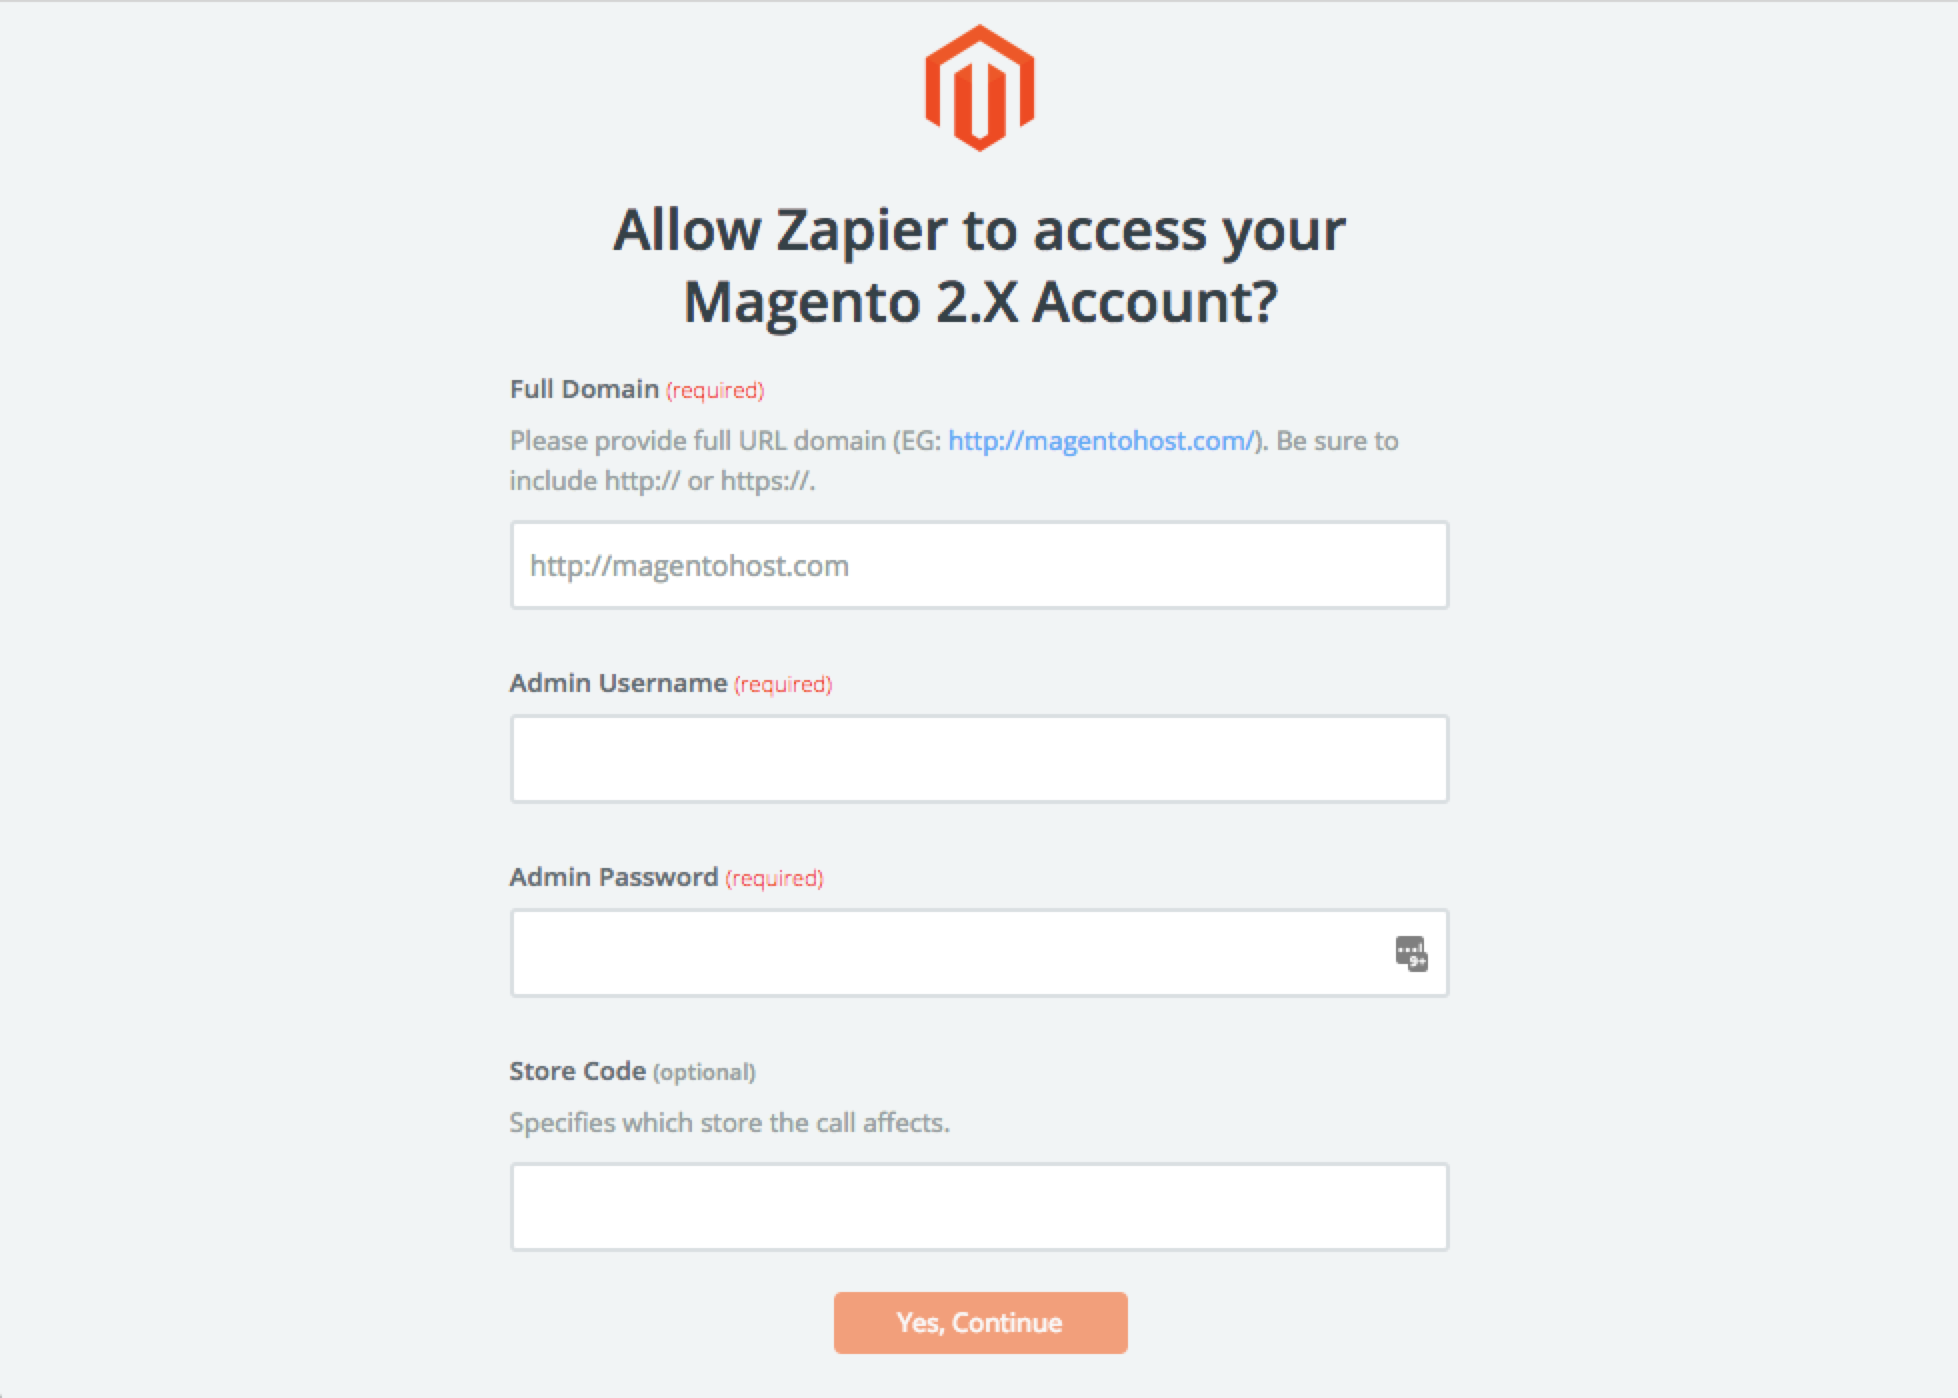 Magento 2.X username and password